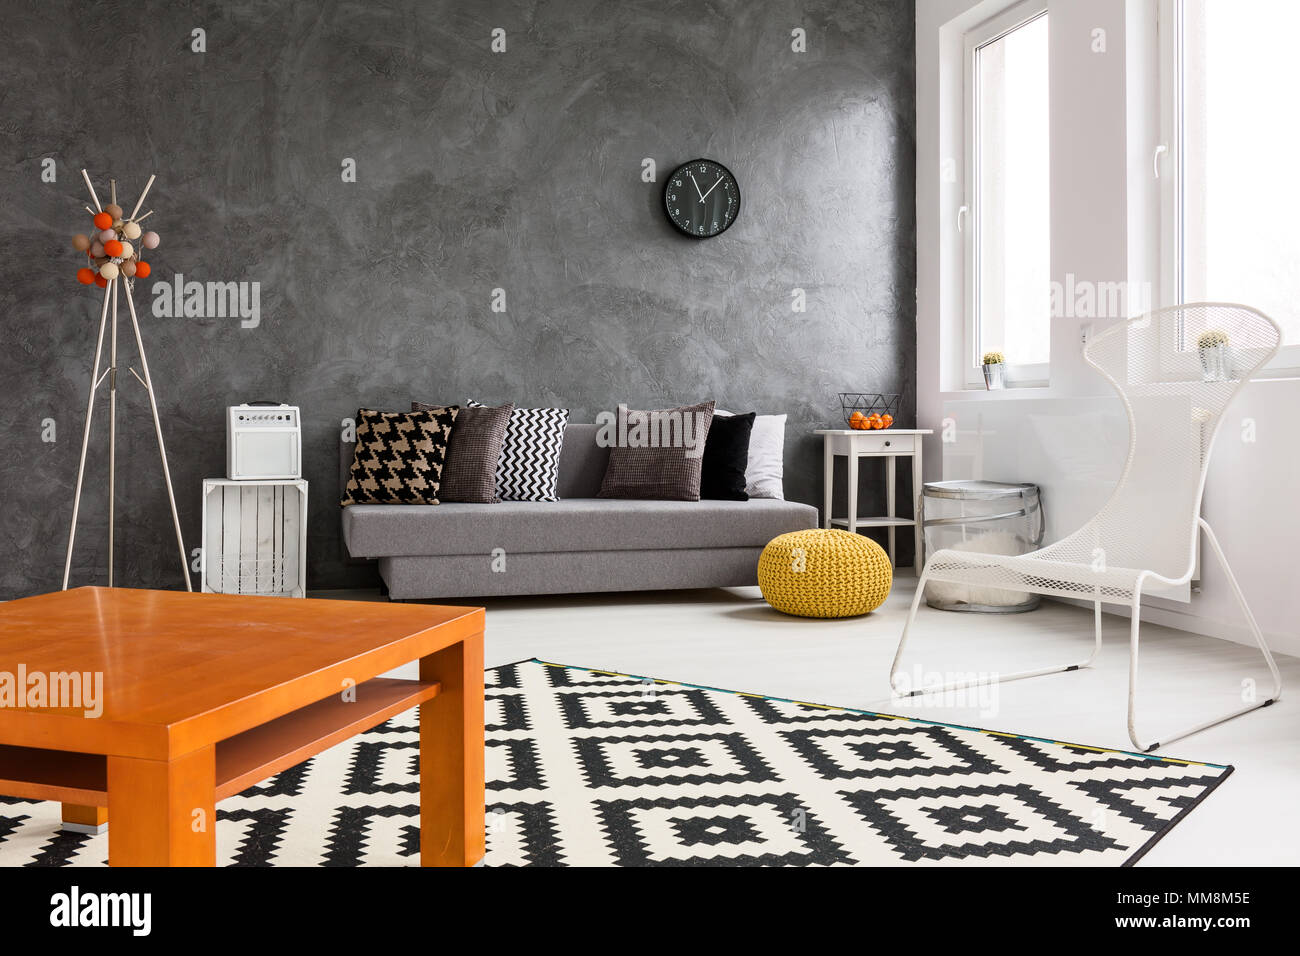 Creative Design Of Spacious Living Room With Black White And Orange Decorations Stock Photo Alamy